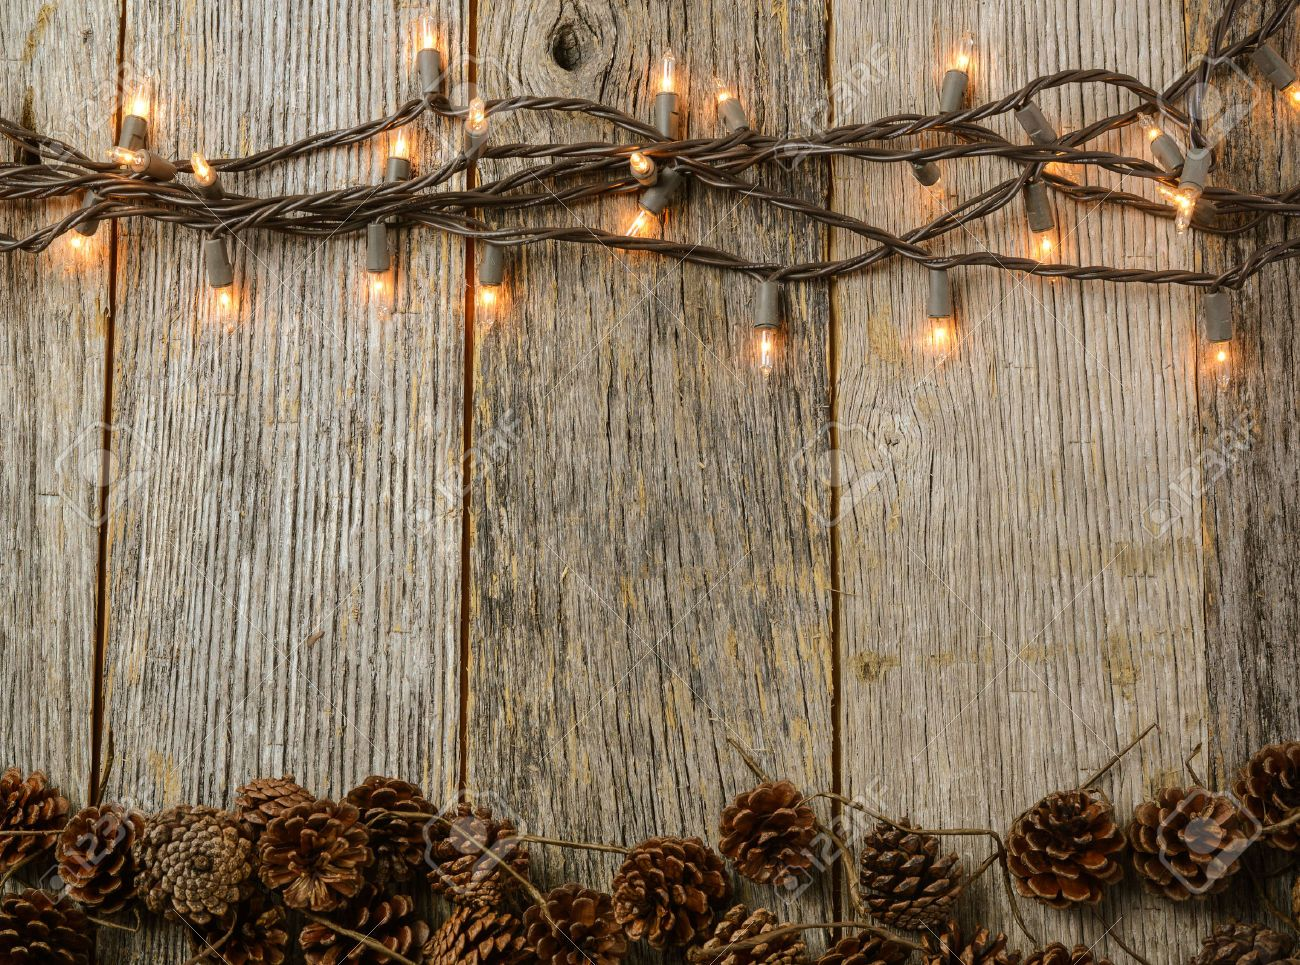 Fall String Lights Wallpaper Weddings Clipart Stock Photo In 2019 Rustic Wood Furniture Wood